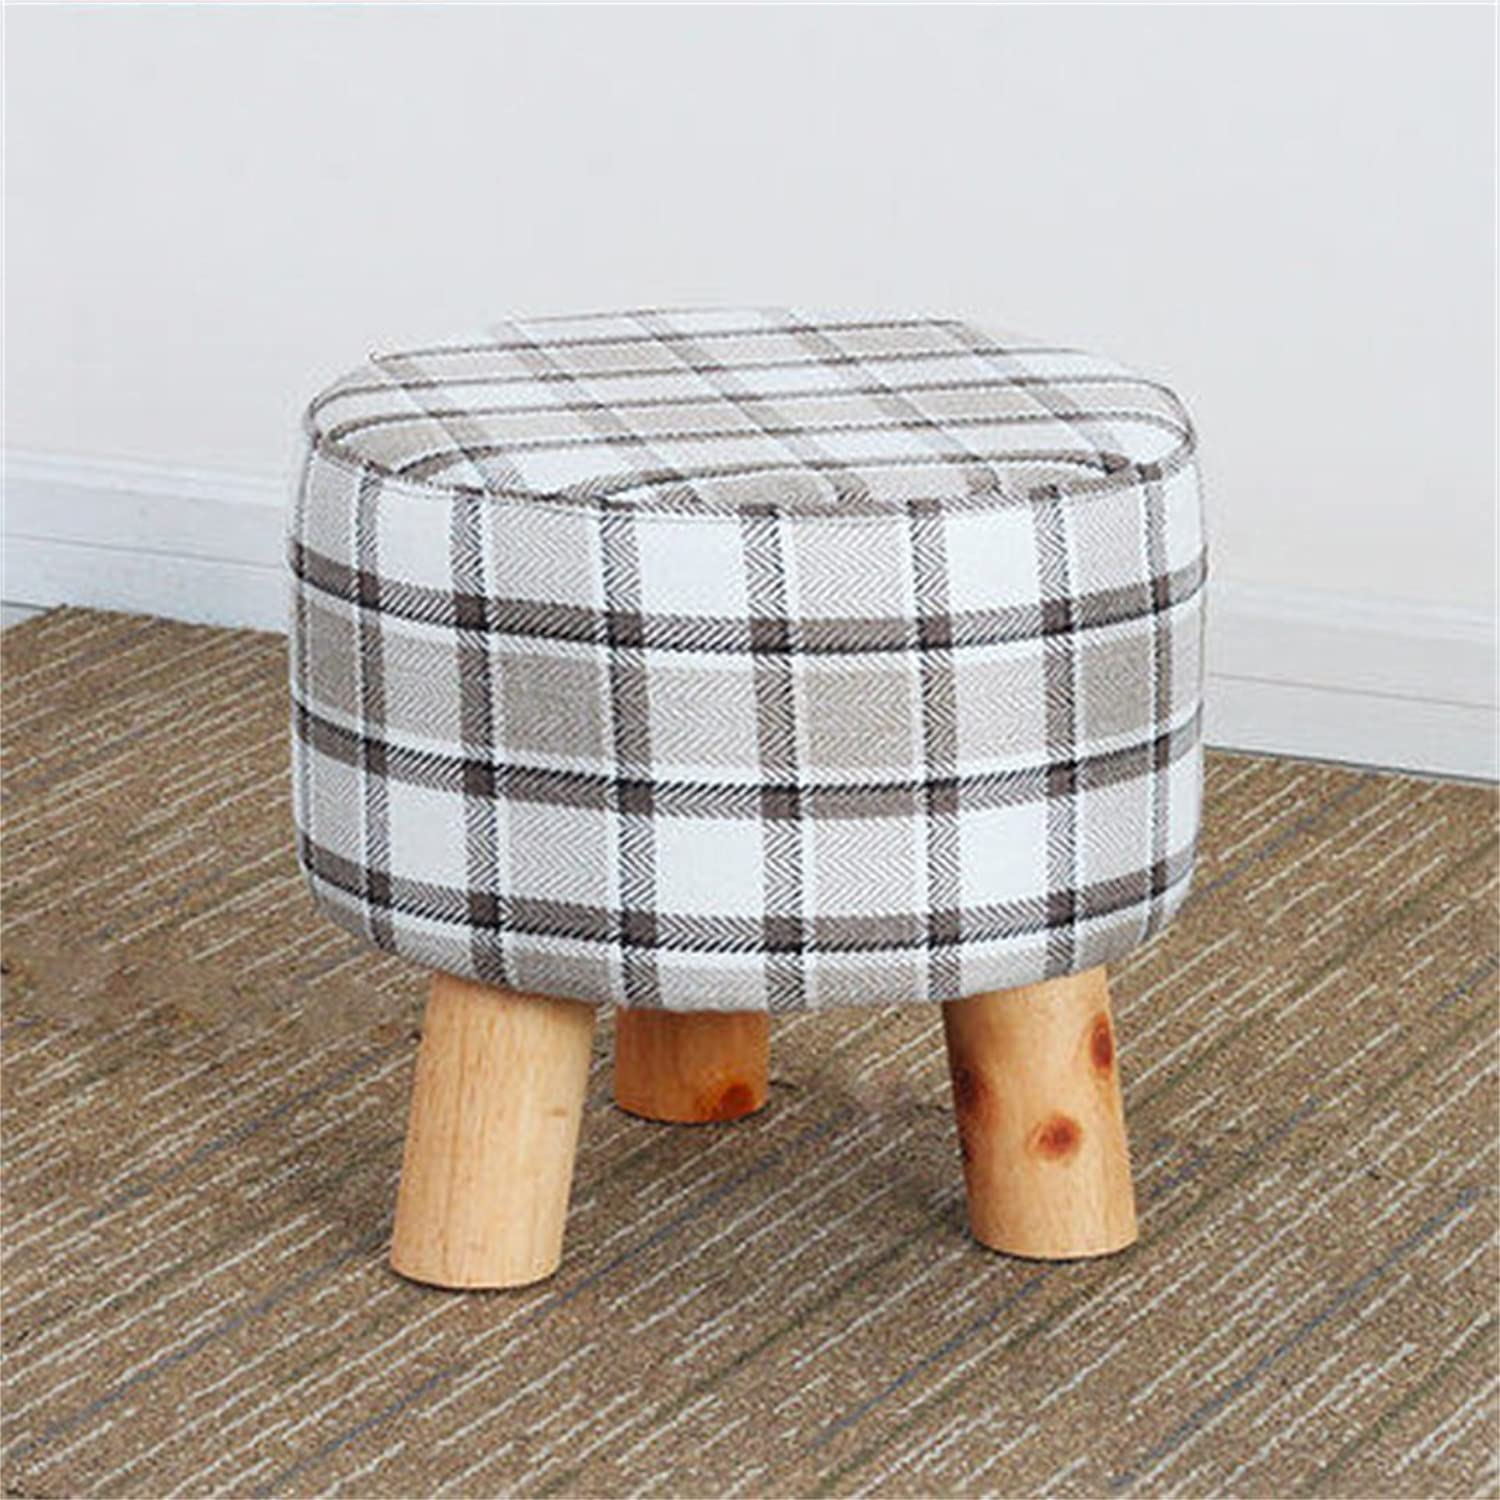 AIDELAI Bar Stool Chair- Solid Wood Change shoes Stool Footstool Test shoes Stool Round Upholstered Footstools 4 Wood Leg Pouffes Stool Fabric Cover Saddle Seat (color     3)